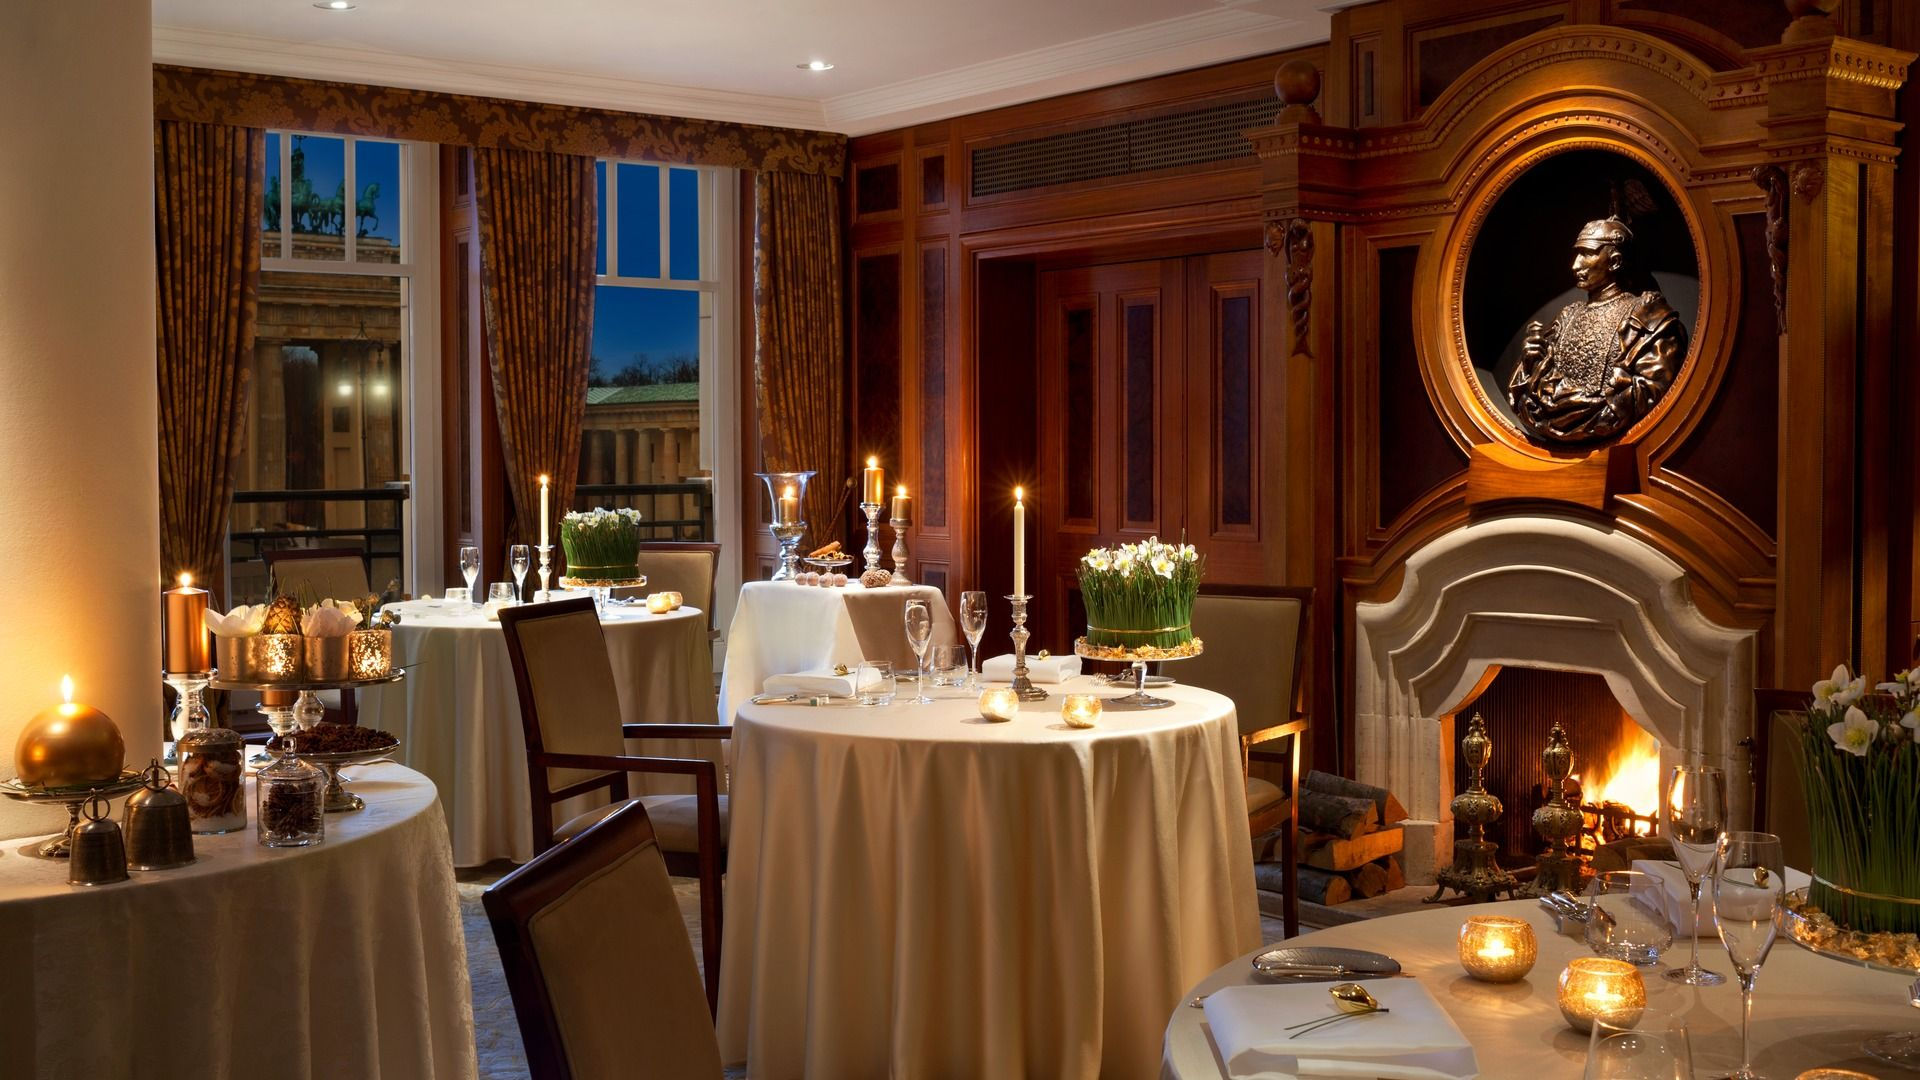 Lorenz Esszimmer Berlin Festive Season Has Arrived In The Lorenz Adlon Esszimmer Enjoy